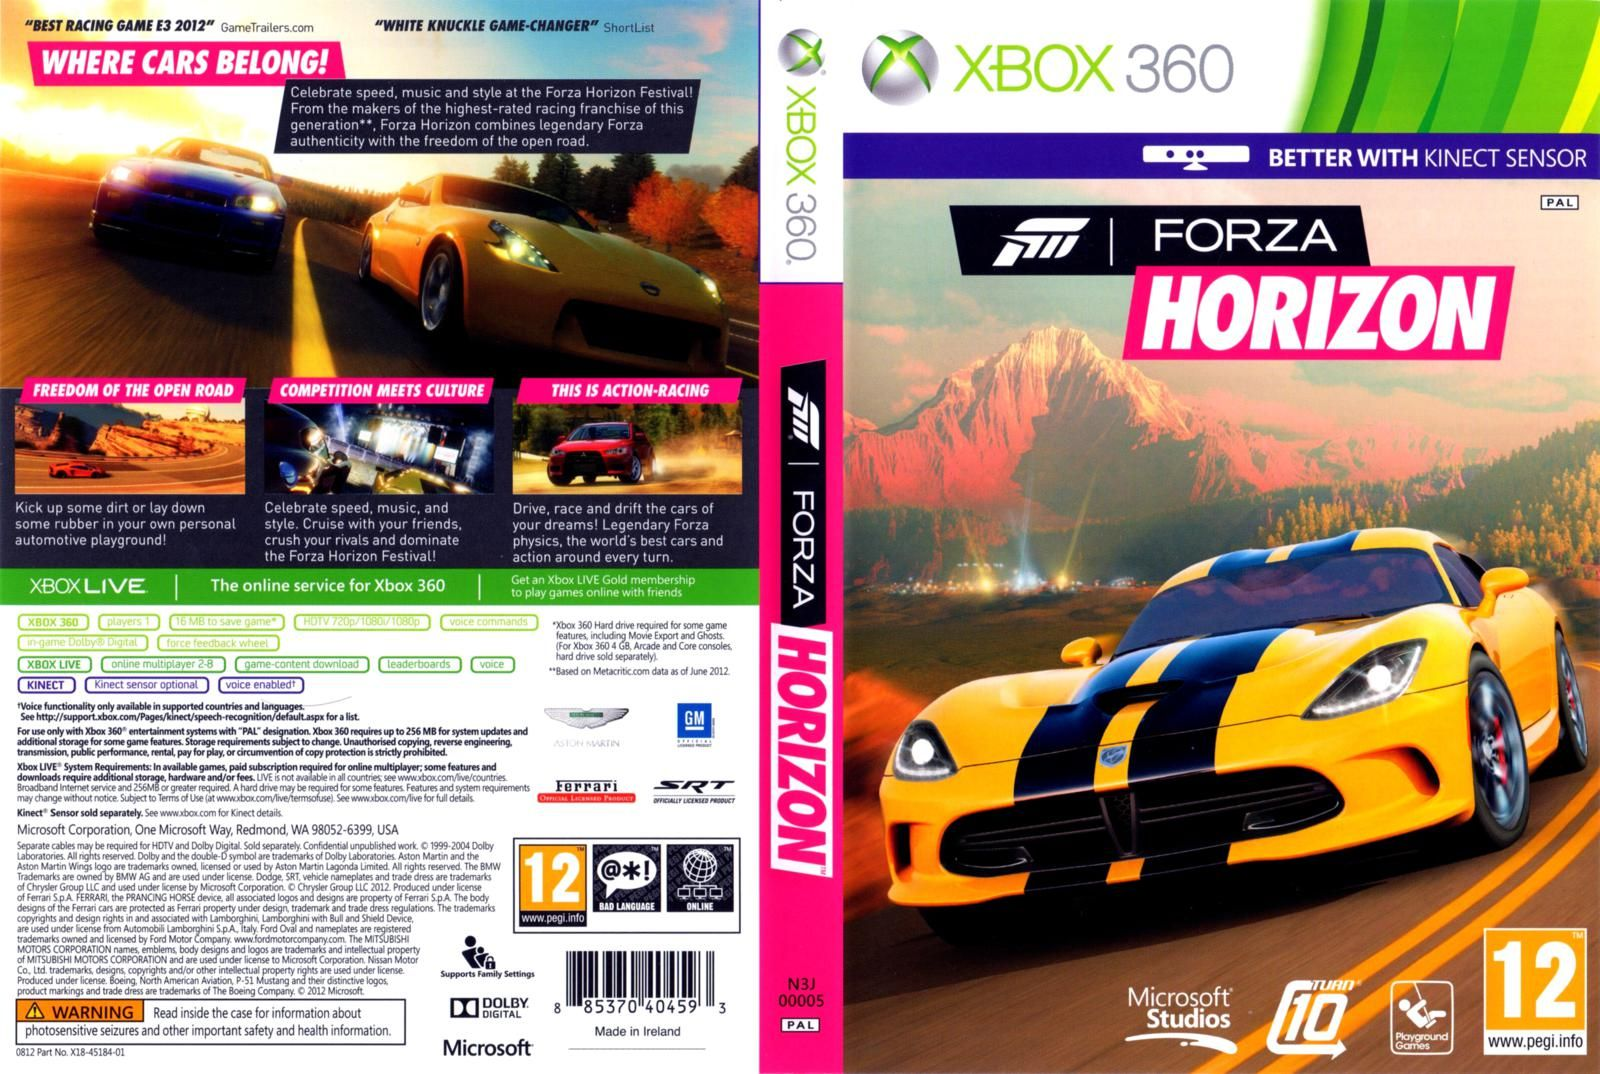 forza horizon xbox 360 forza horizon xbox 360 forza pinterest xbox xbox 360 and html. Black Bedroom Furniture Sets. Home Design Ideas